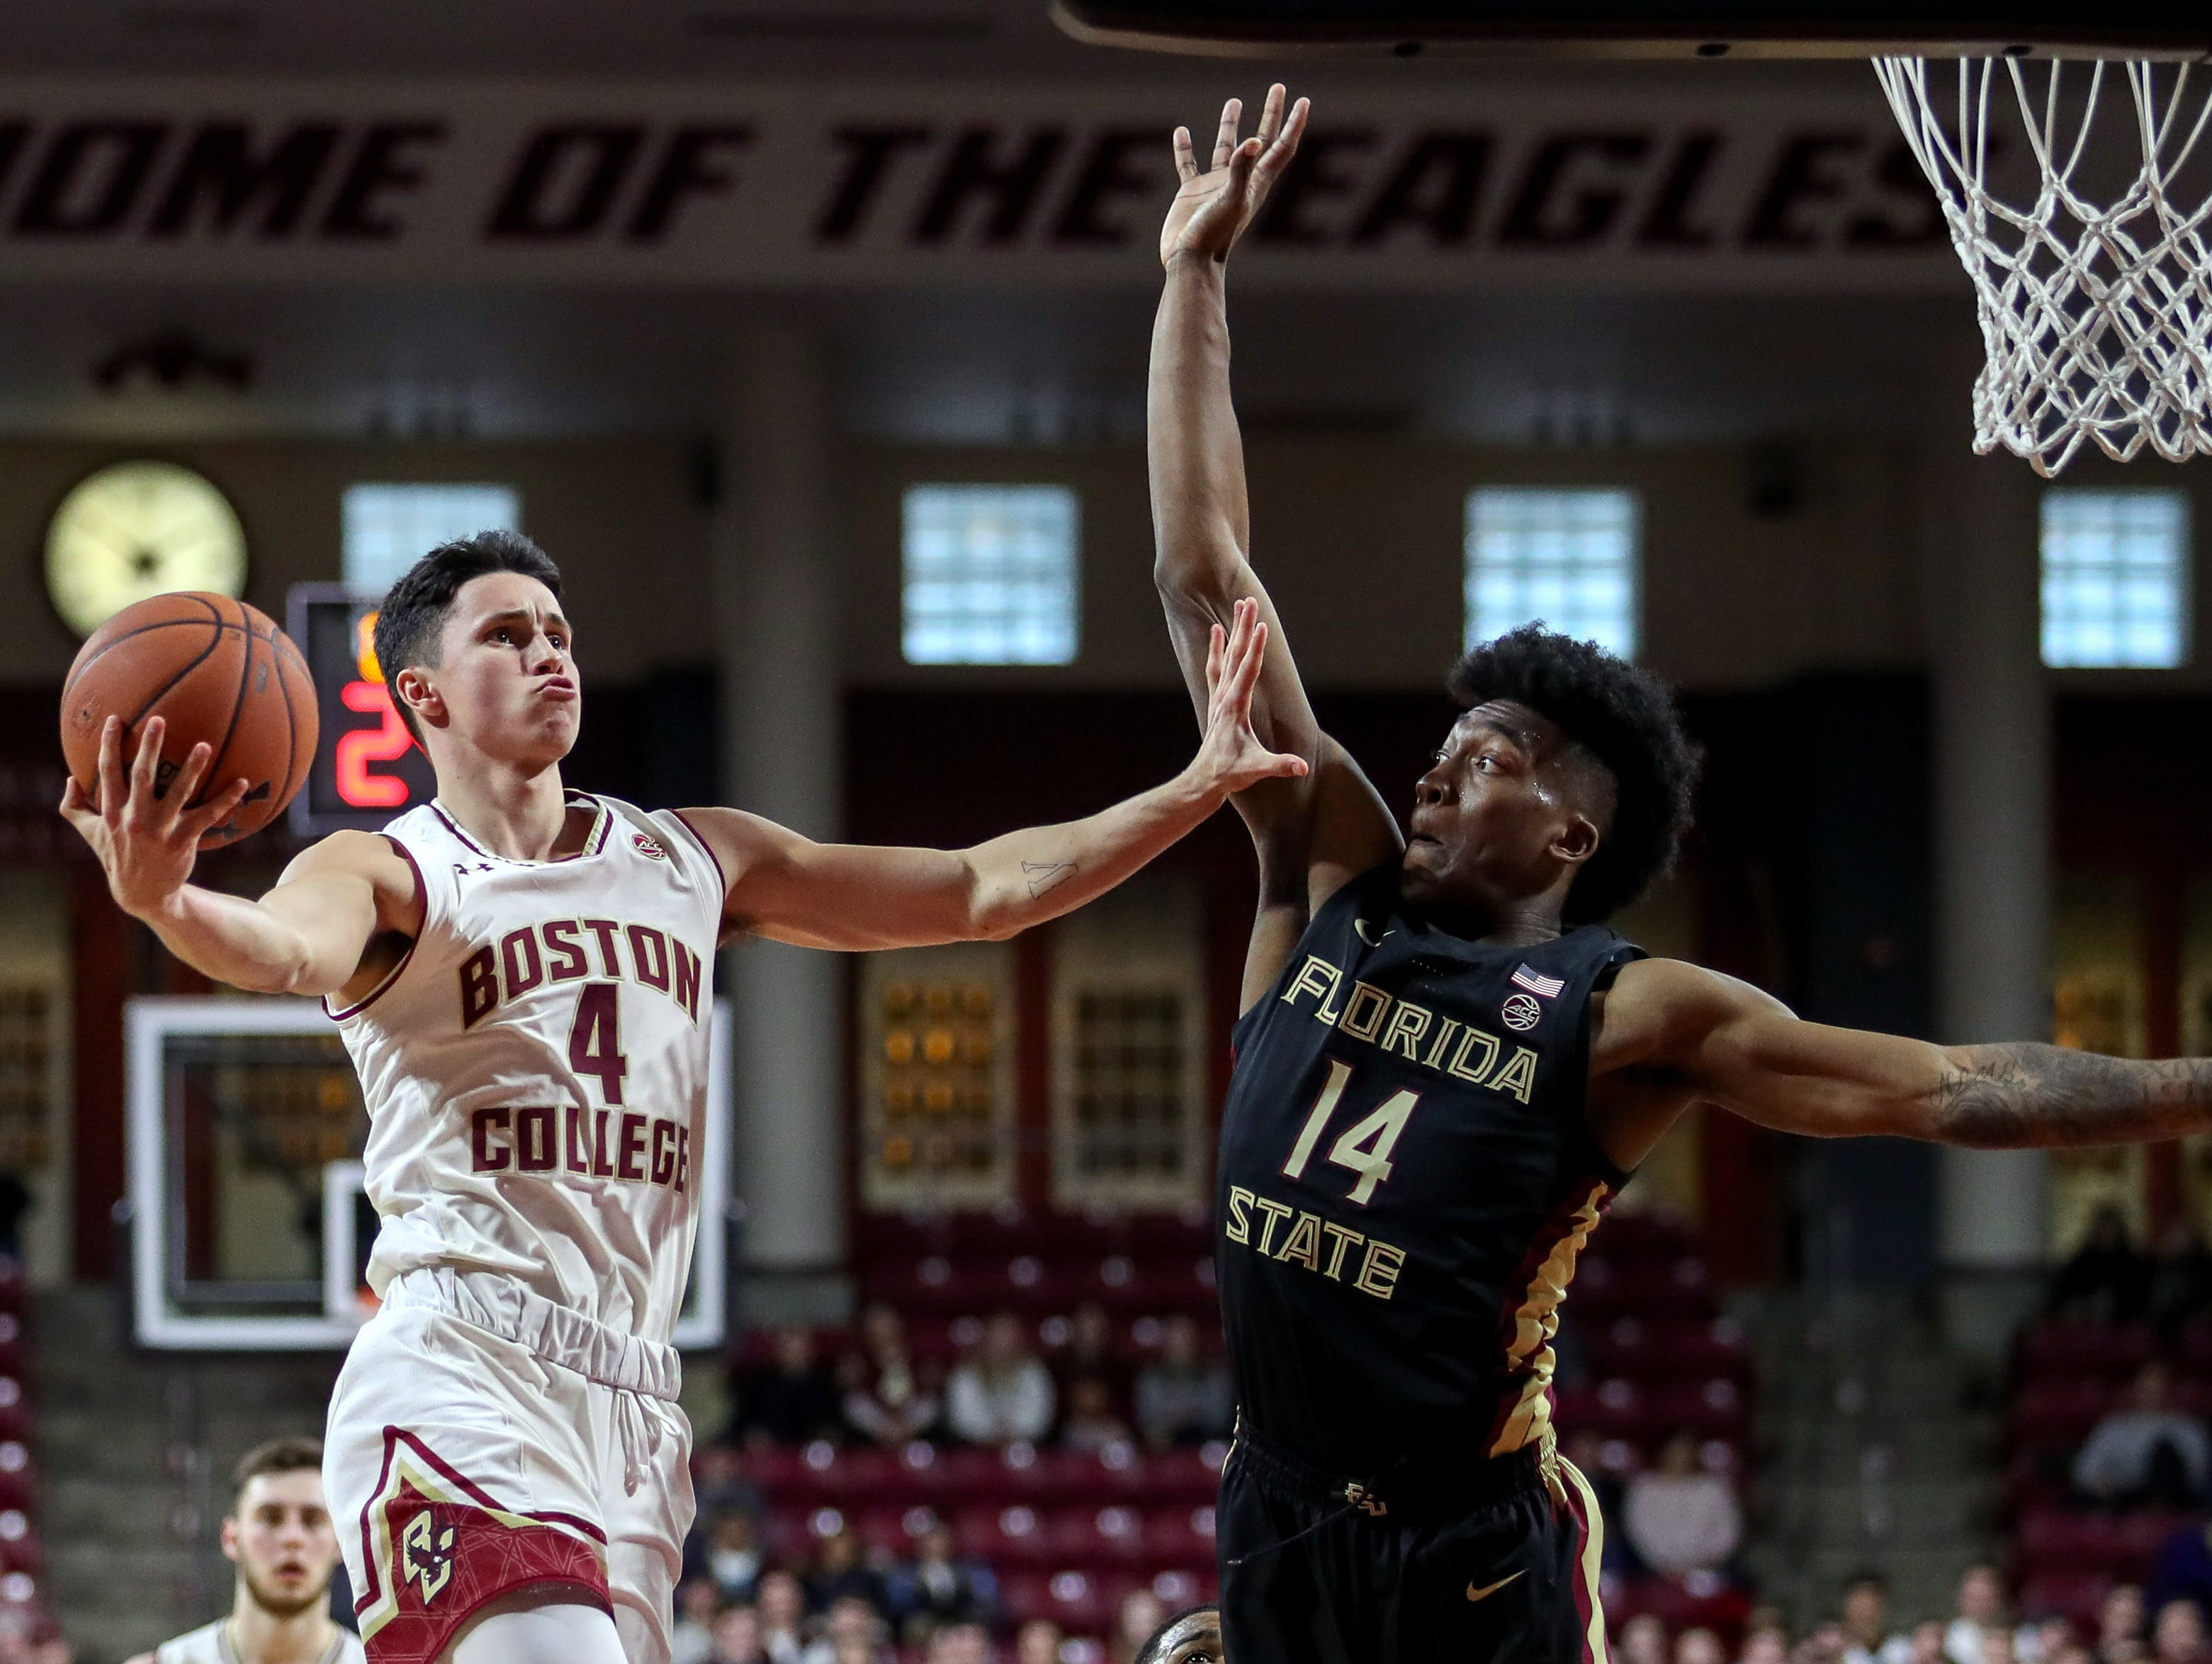 Jan 20, 2019; Chestnut Hill, MA, USA; Boston College Eagles guard Chris Herren Jr. (4) shoots against Florida State Seminoles guard Terance Mann (14) during the second half at Conte Forum. Mandatory Credit: Paul Rutherford-USA TODAY Sports